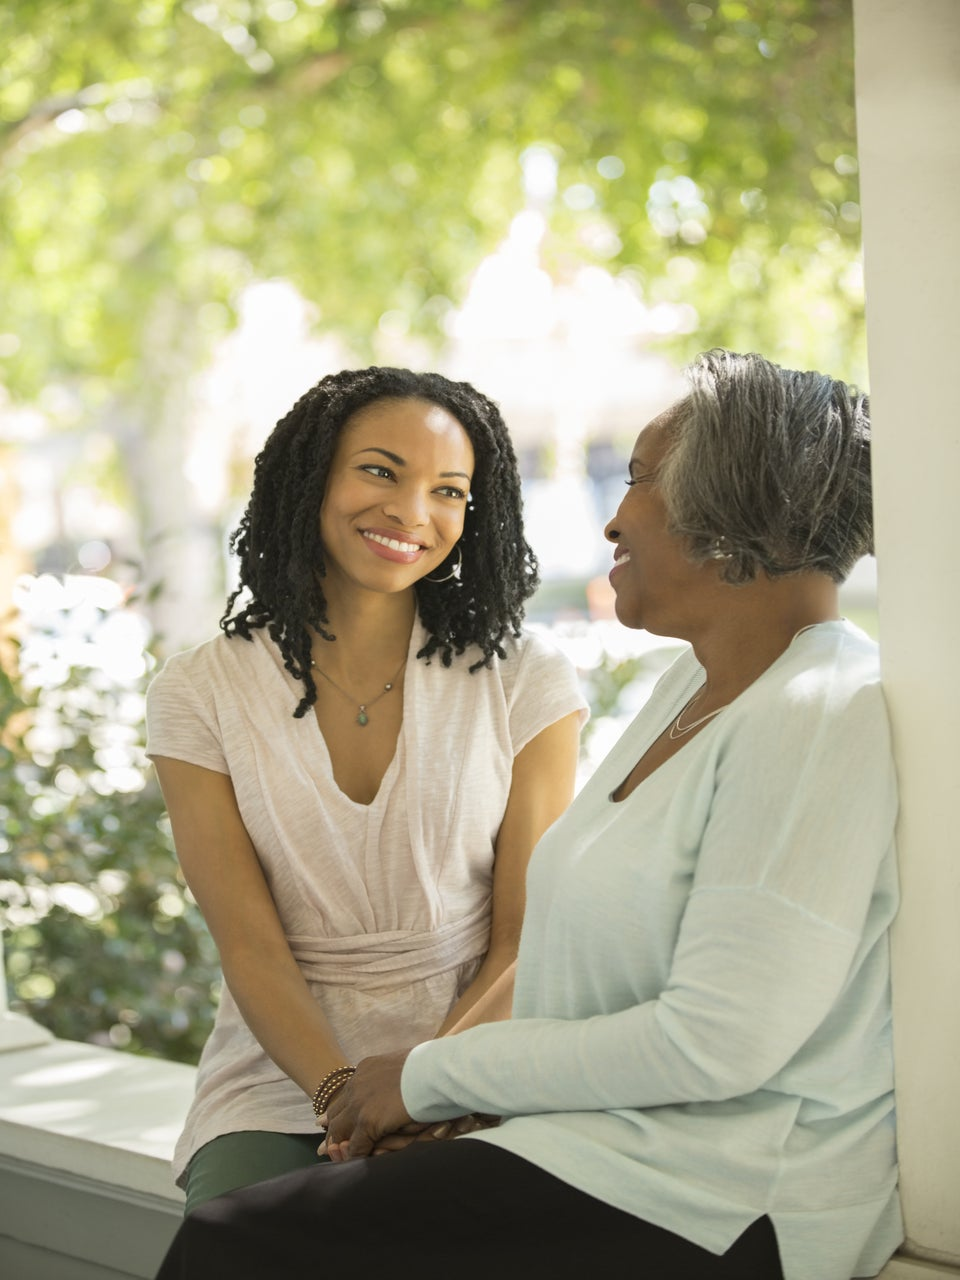 STUDY: Trauma May Be Passed Down From Mothers To Daughters